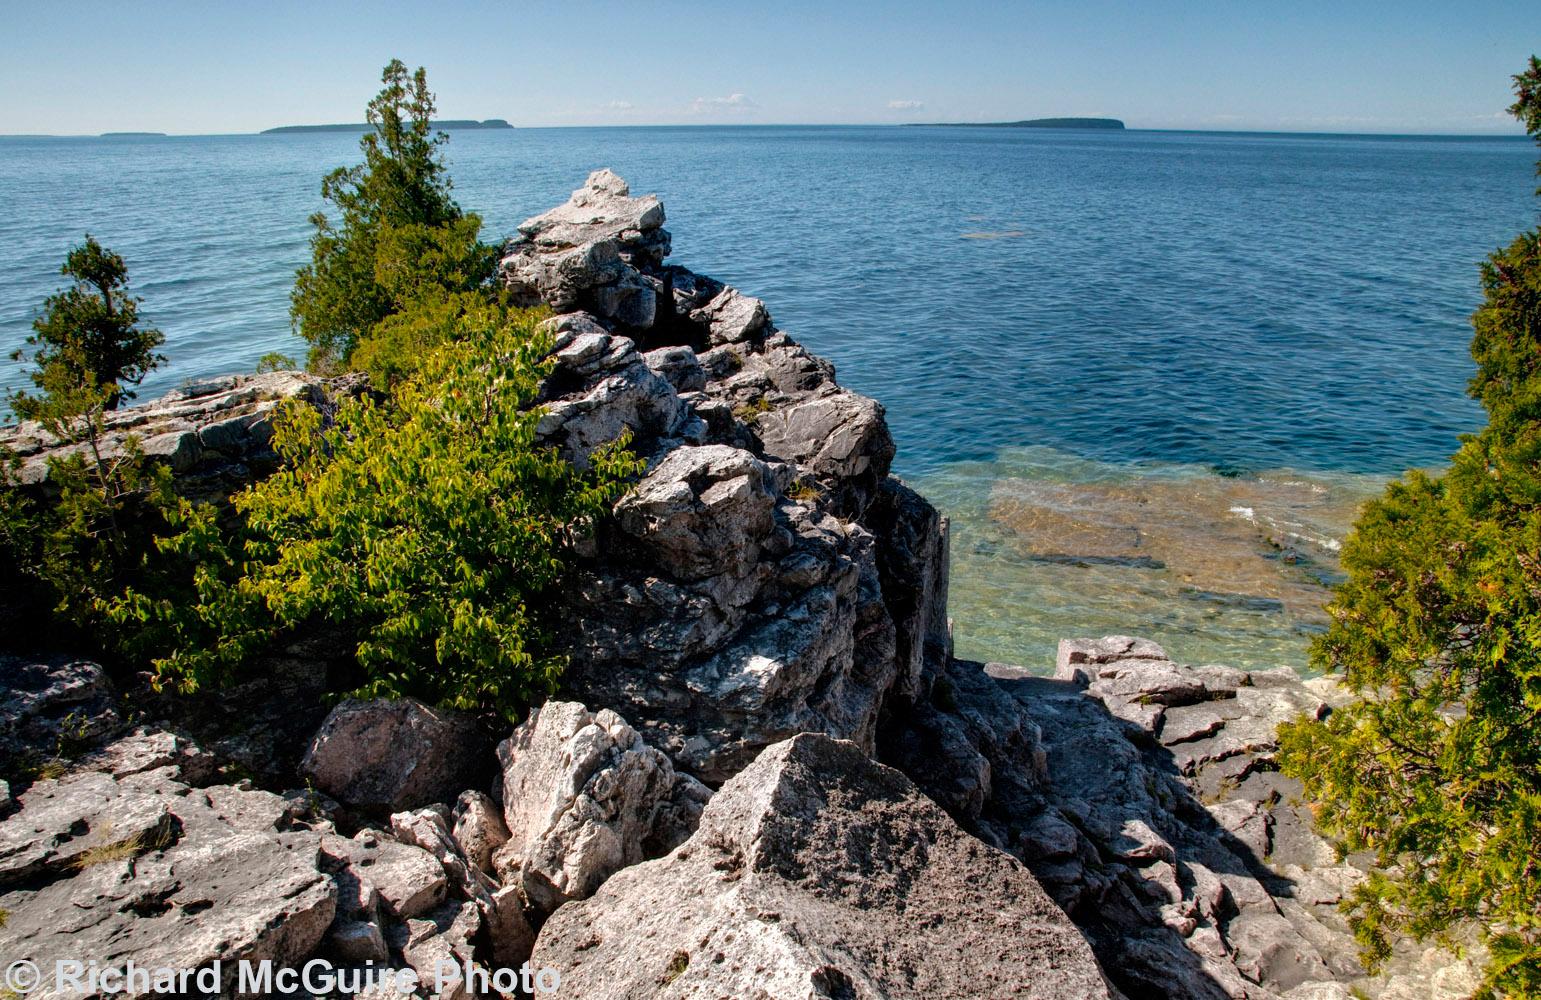 Shoreline, Bruce Peninsula National Park, Ontario